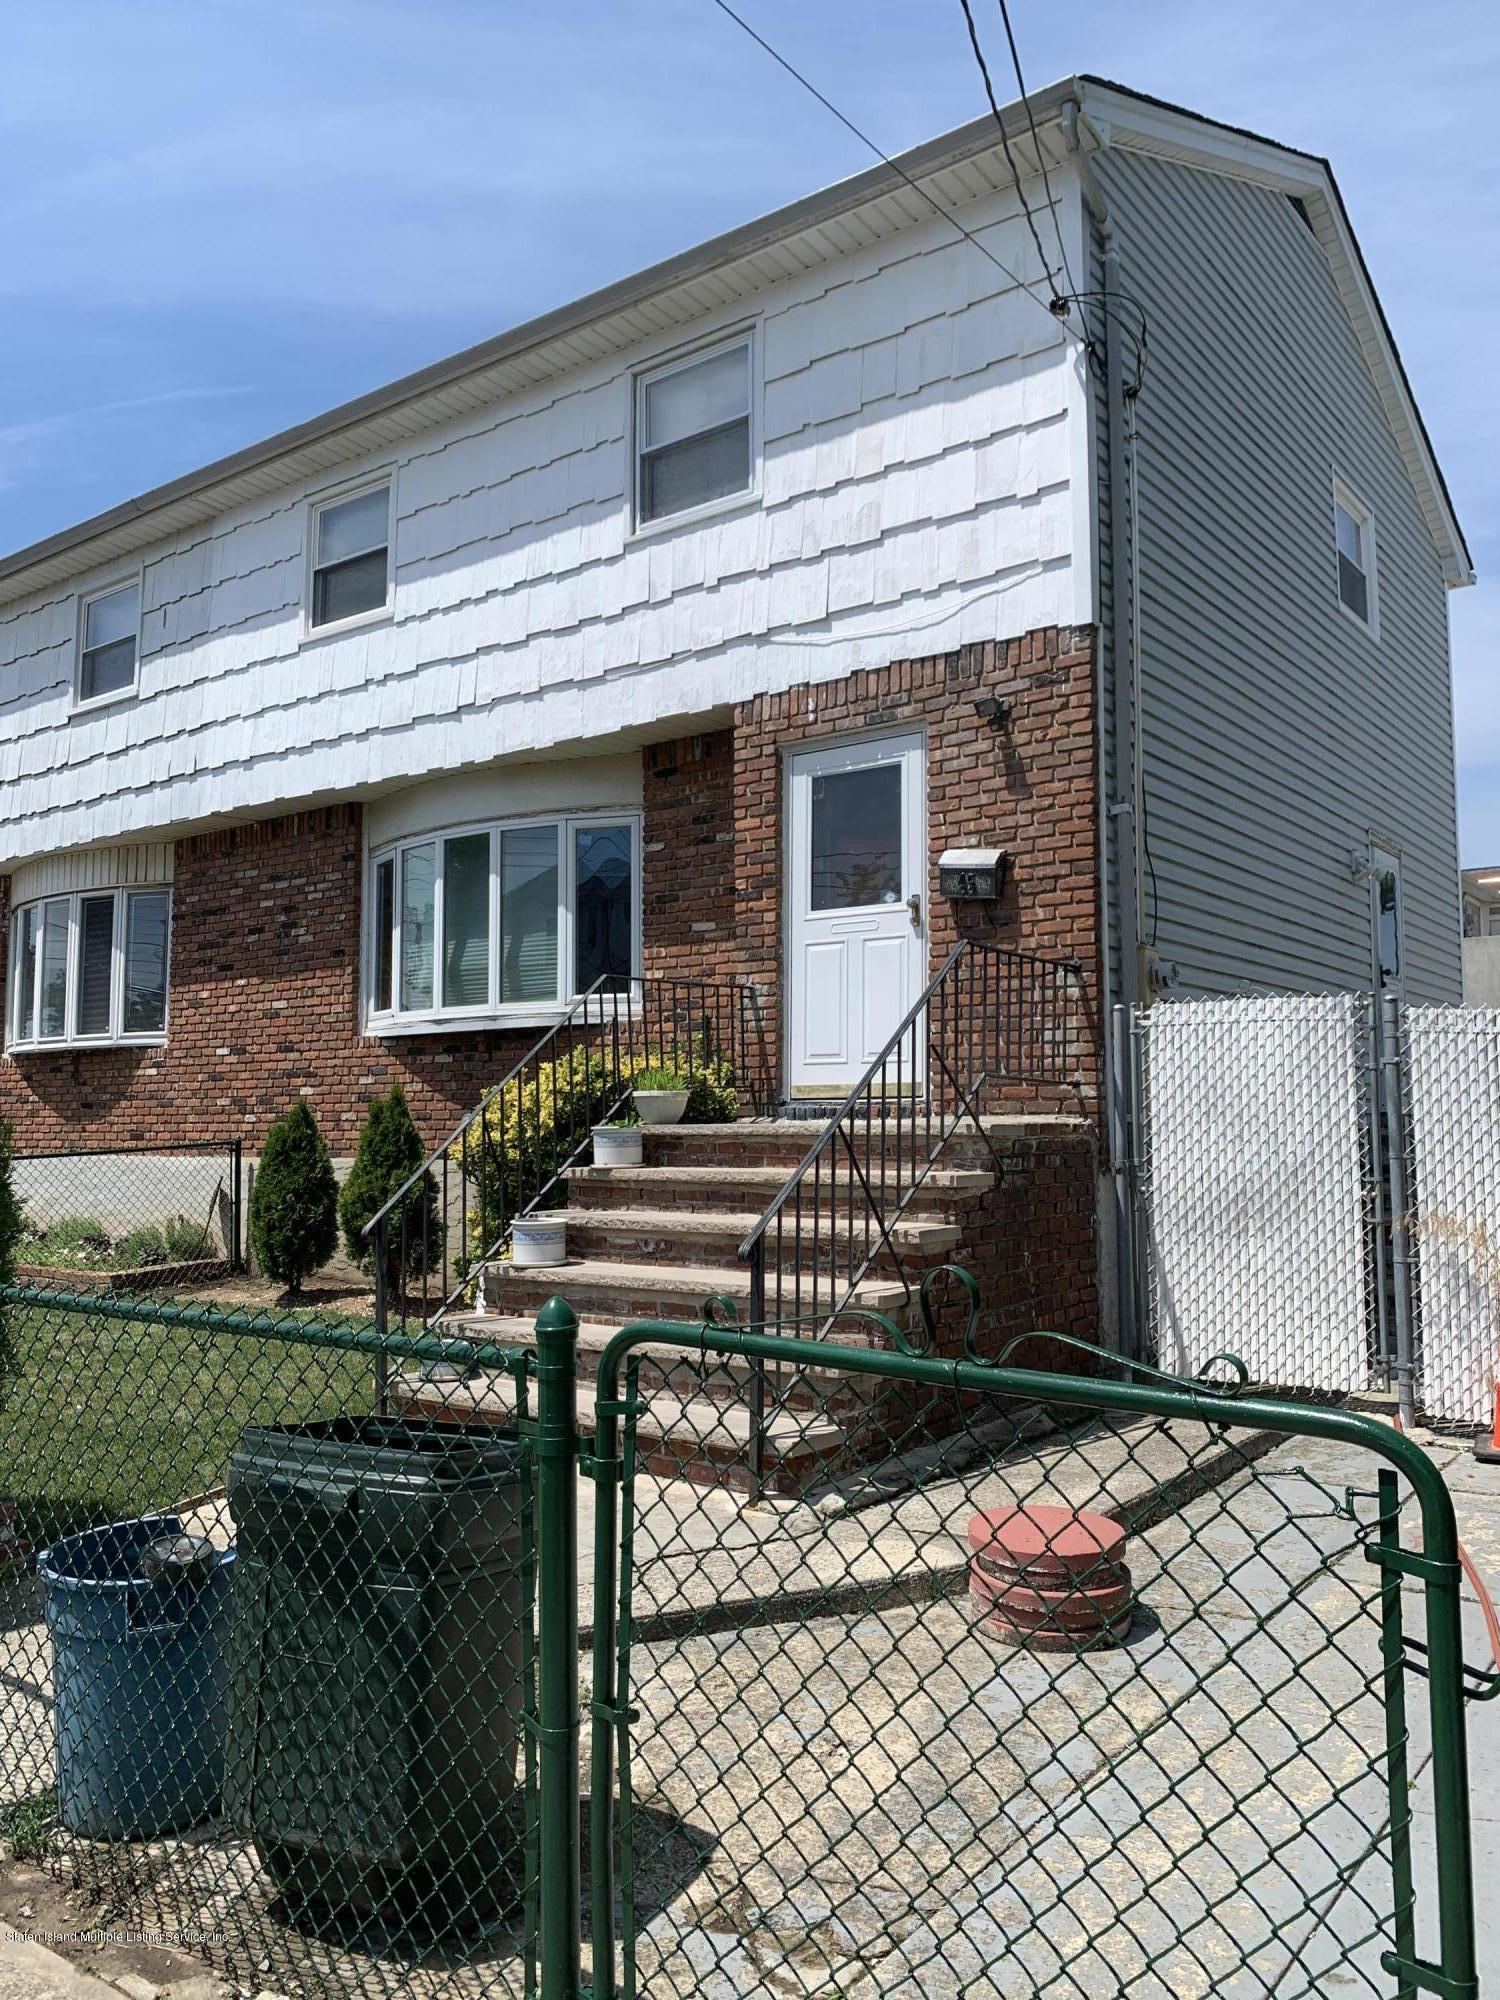 Single Family - Semi-Attached 45 Roma Avenue  Staten Island, NY 10306, MLS-1138173-2